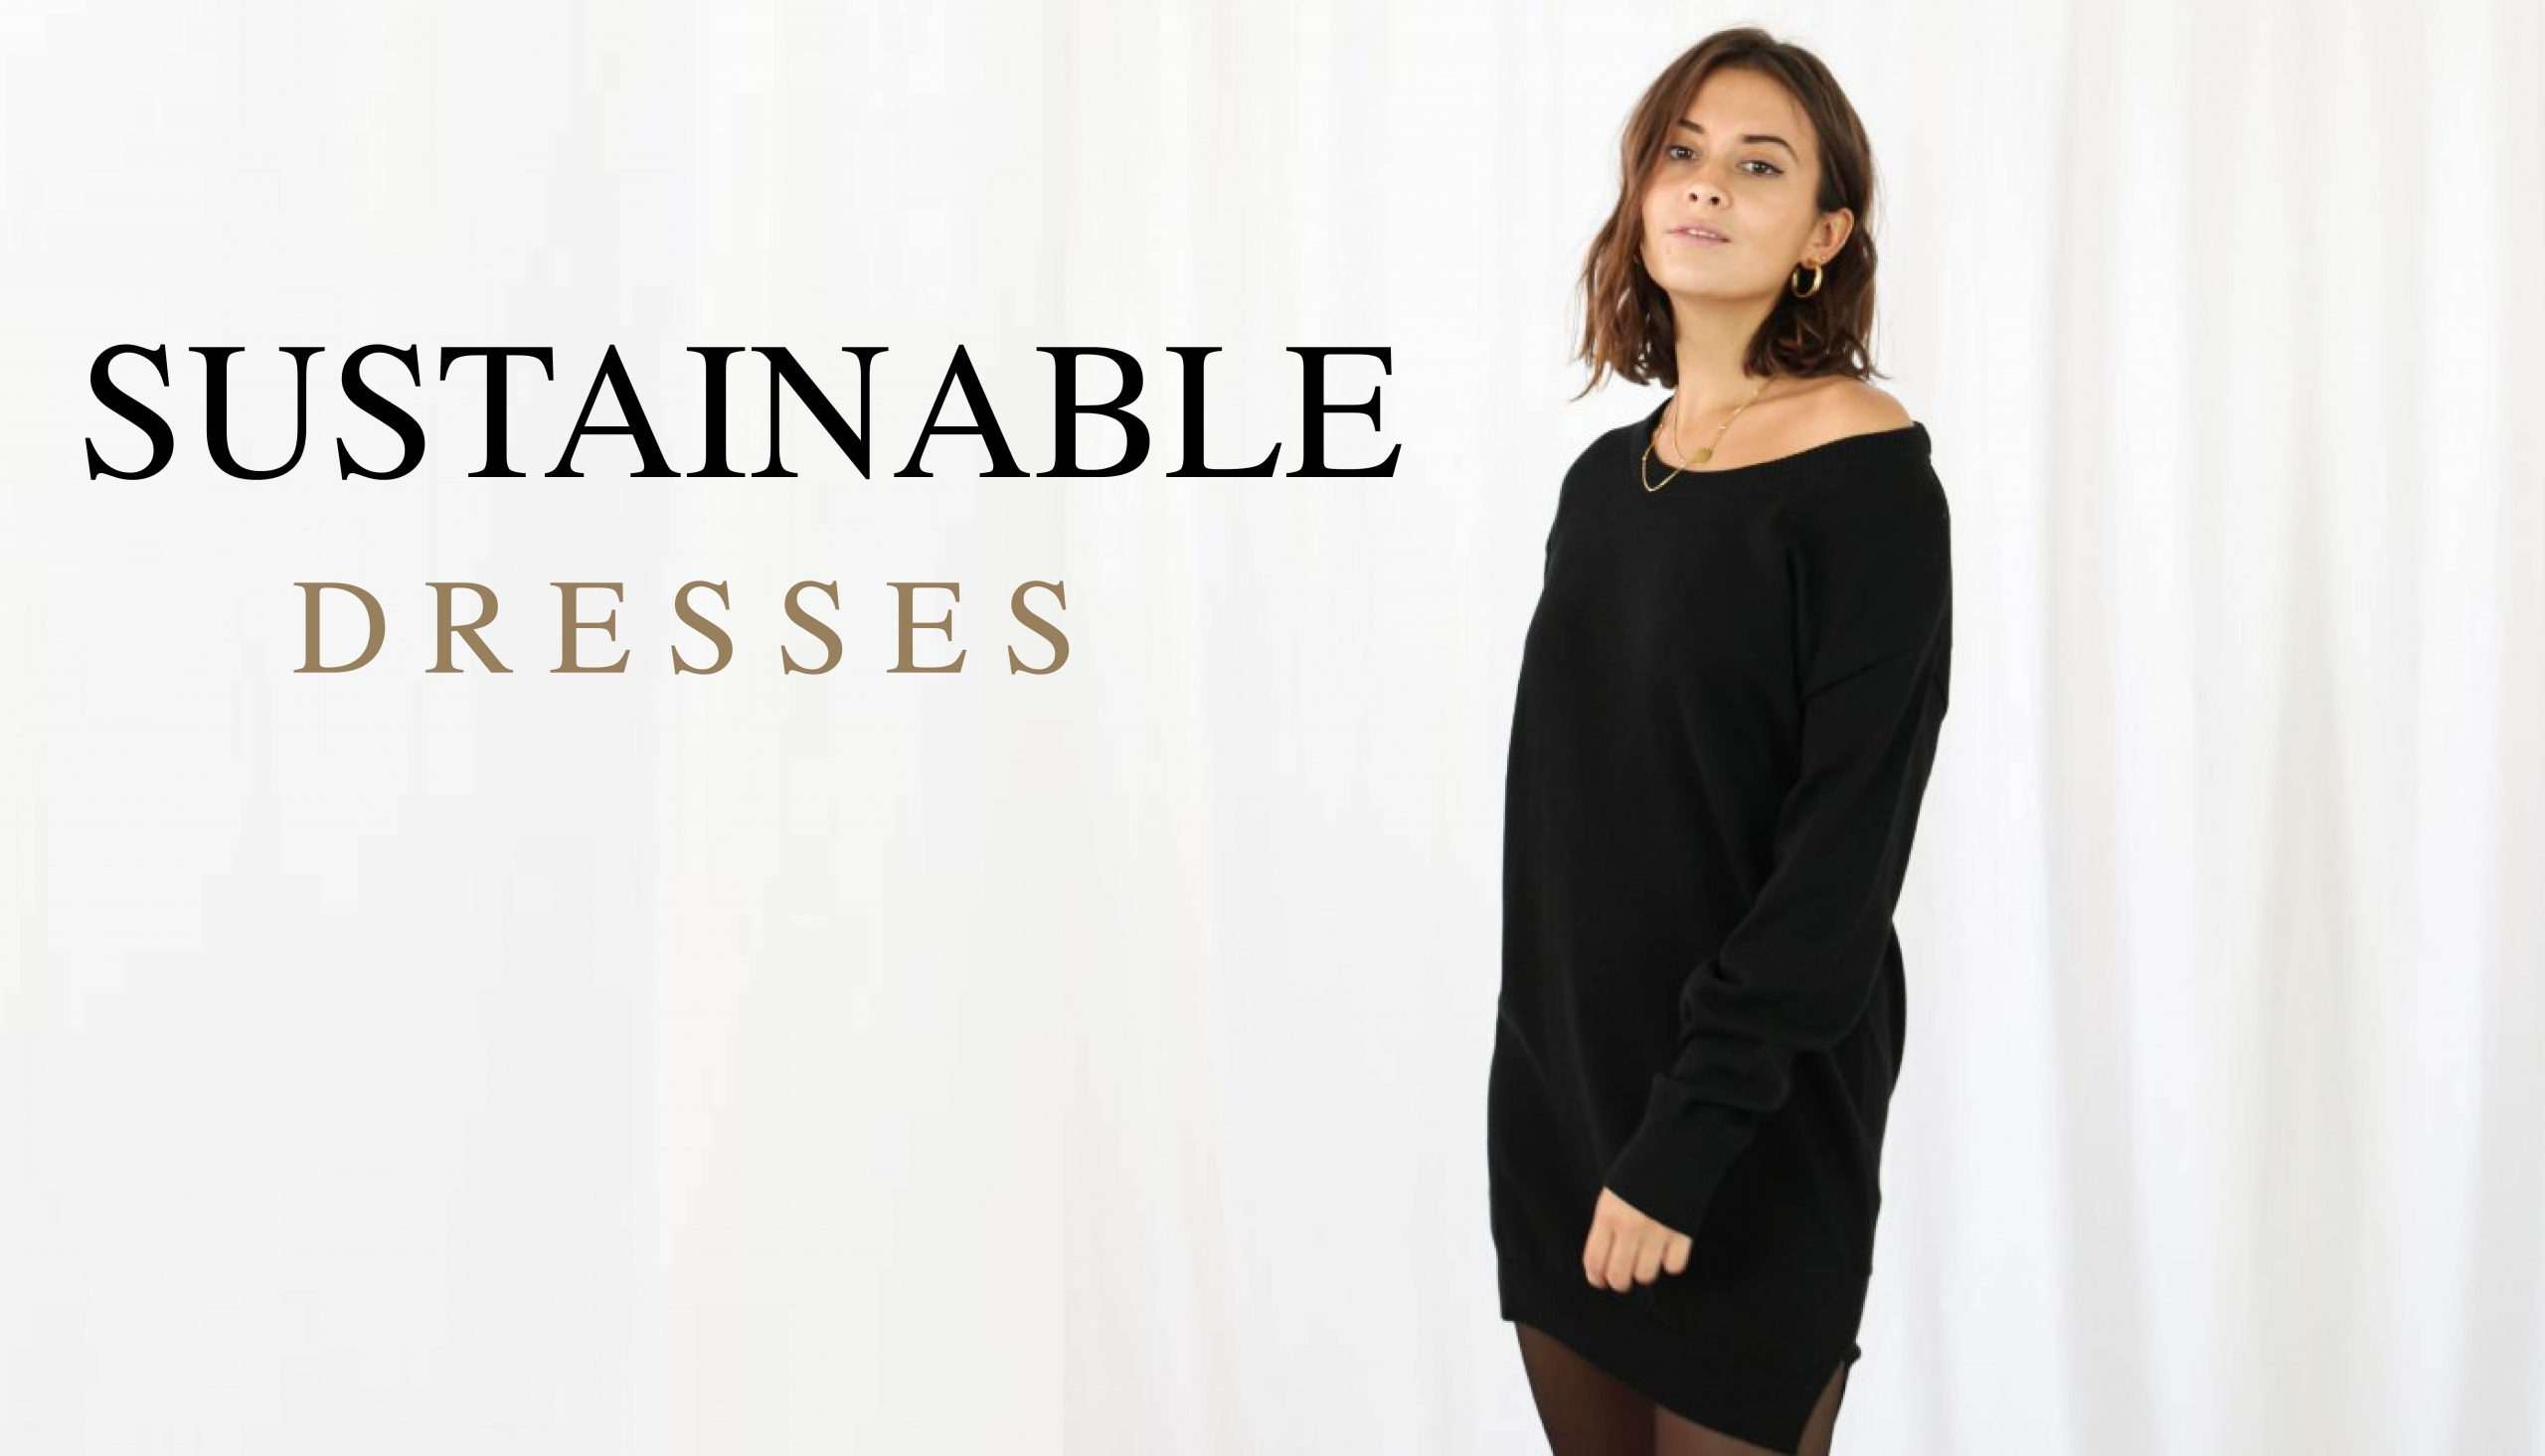 SUSTAINABLE DRESSES